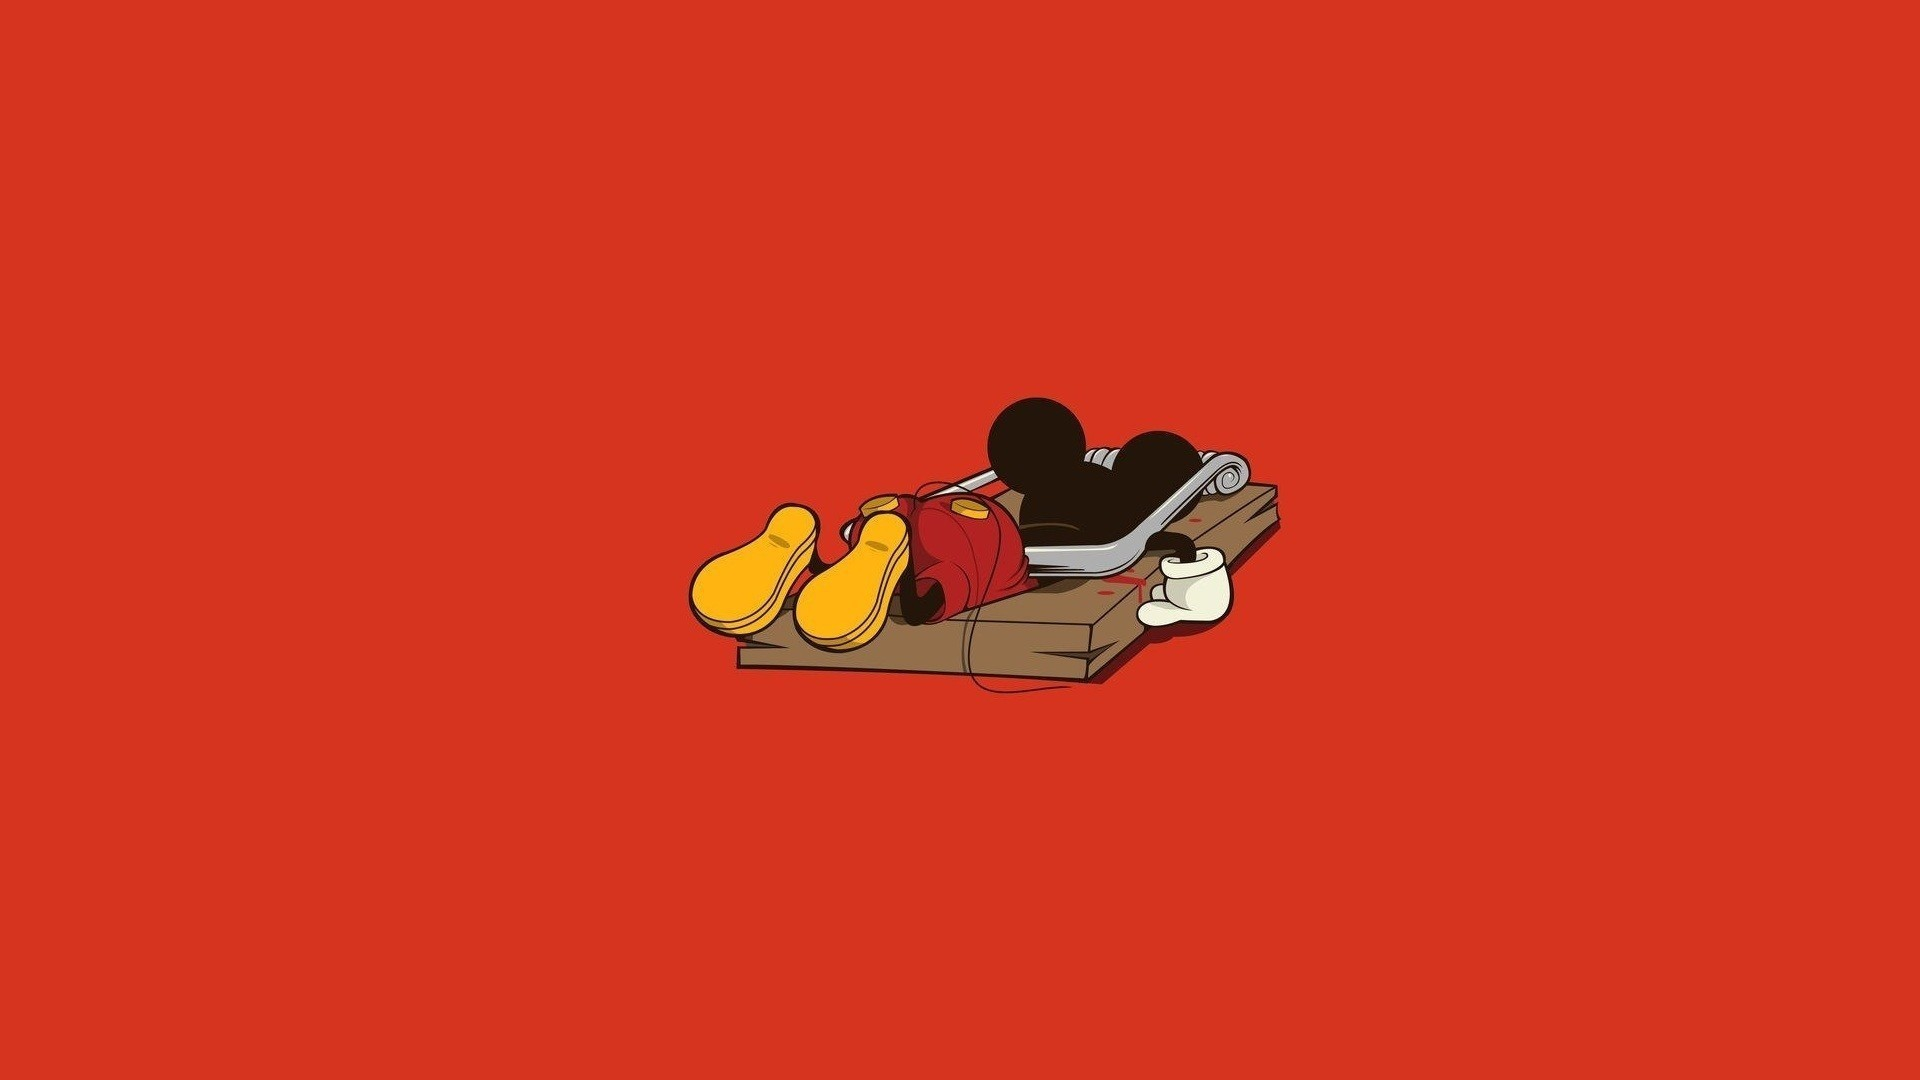 Mickey-mouse-artwork-funny-minimalistic-red-1920x1080-mouse-artwork-funny-minimalistic-red-v-wallpaper-wp3408600